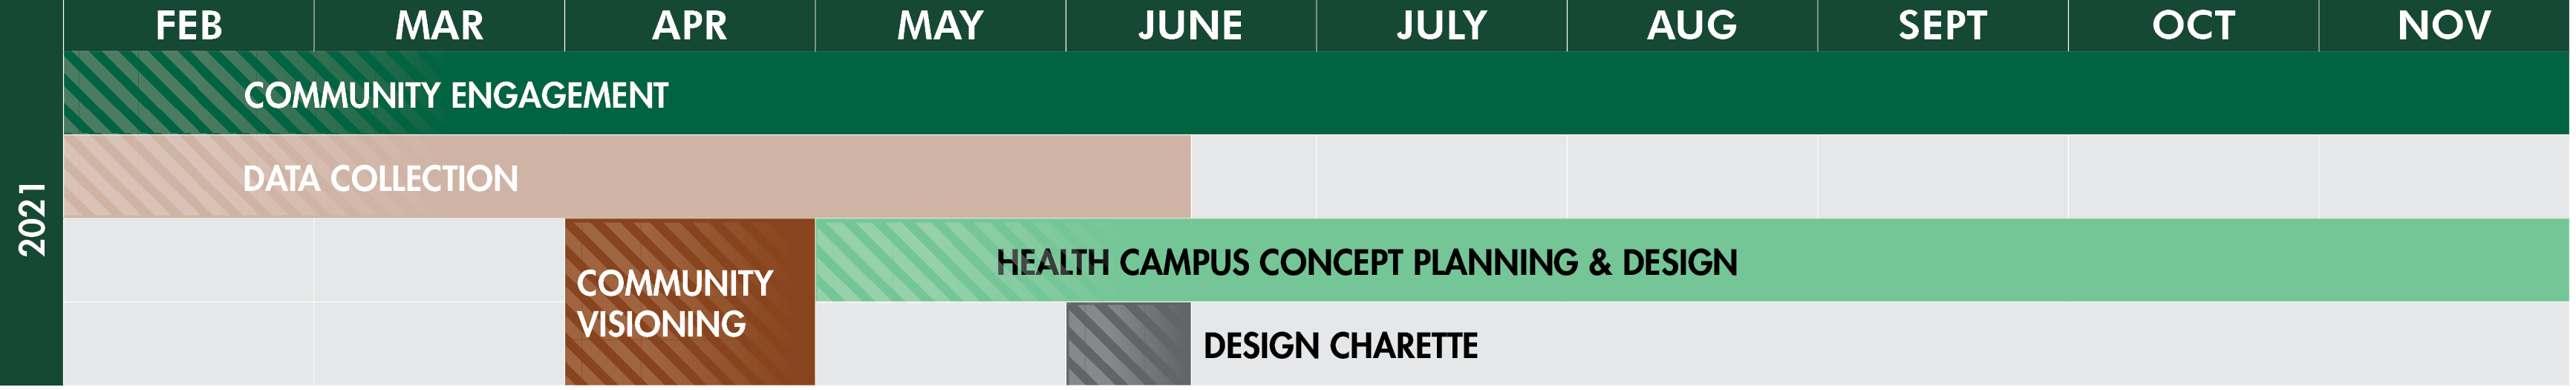 Mat-Su Health Foundation Community Health Campus Master Plan Schedule